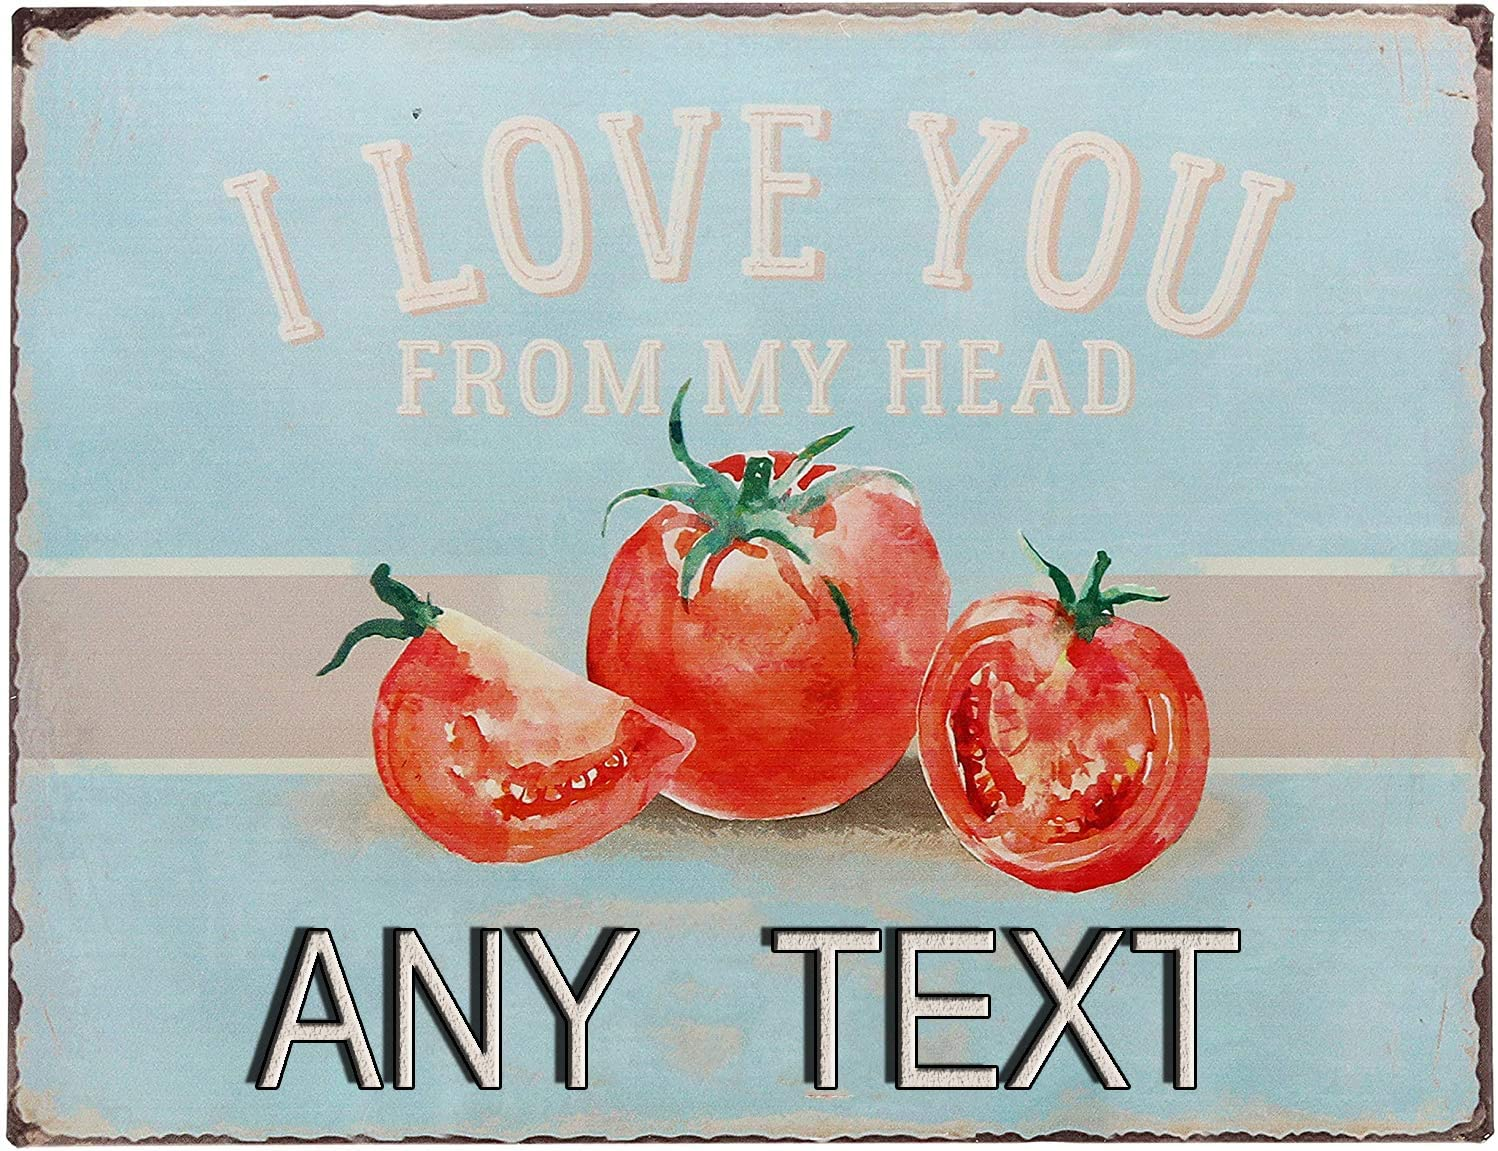 MAIYUAN Personalized I Love You from My Head Tomatoes Funny Retro Vintage Bar Sign Country Home Decor